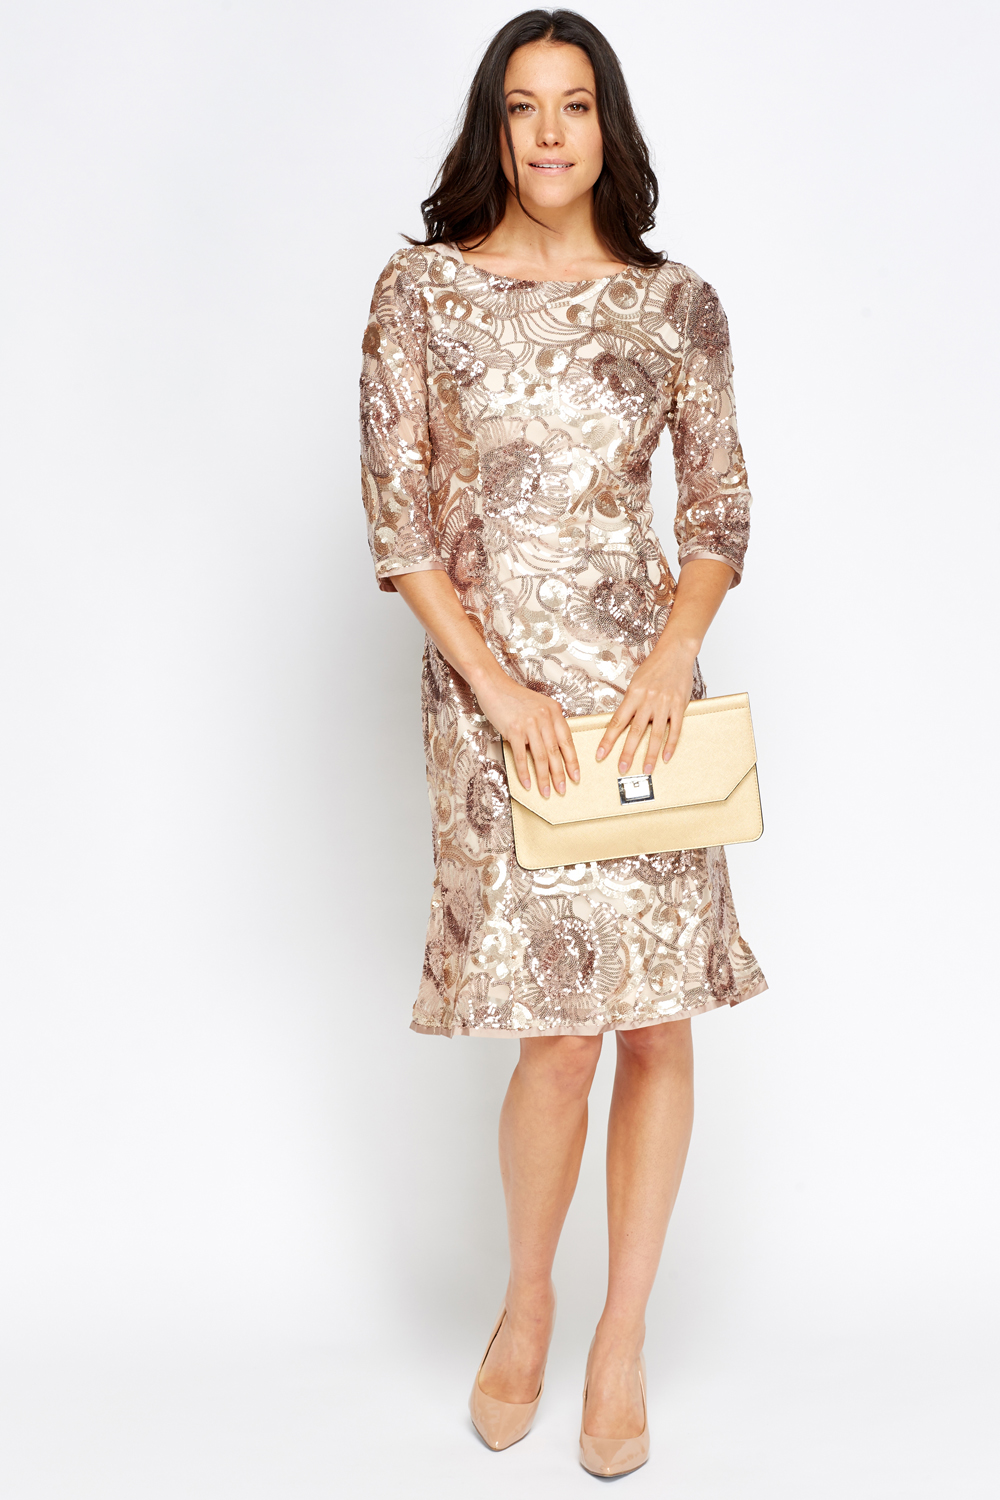 e2eee3b3 Sequin Embellished Midi Dress - Just £5